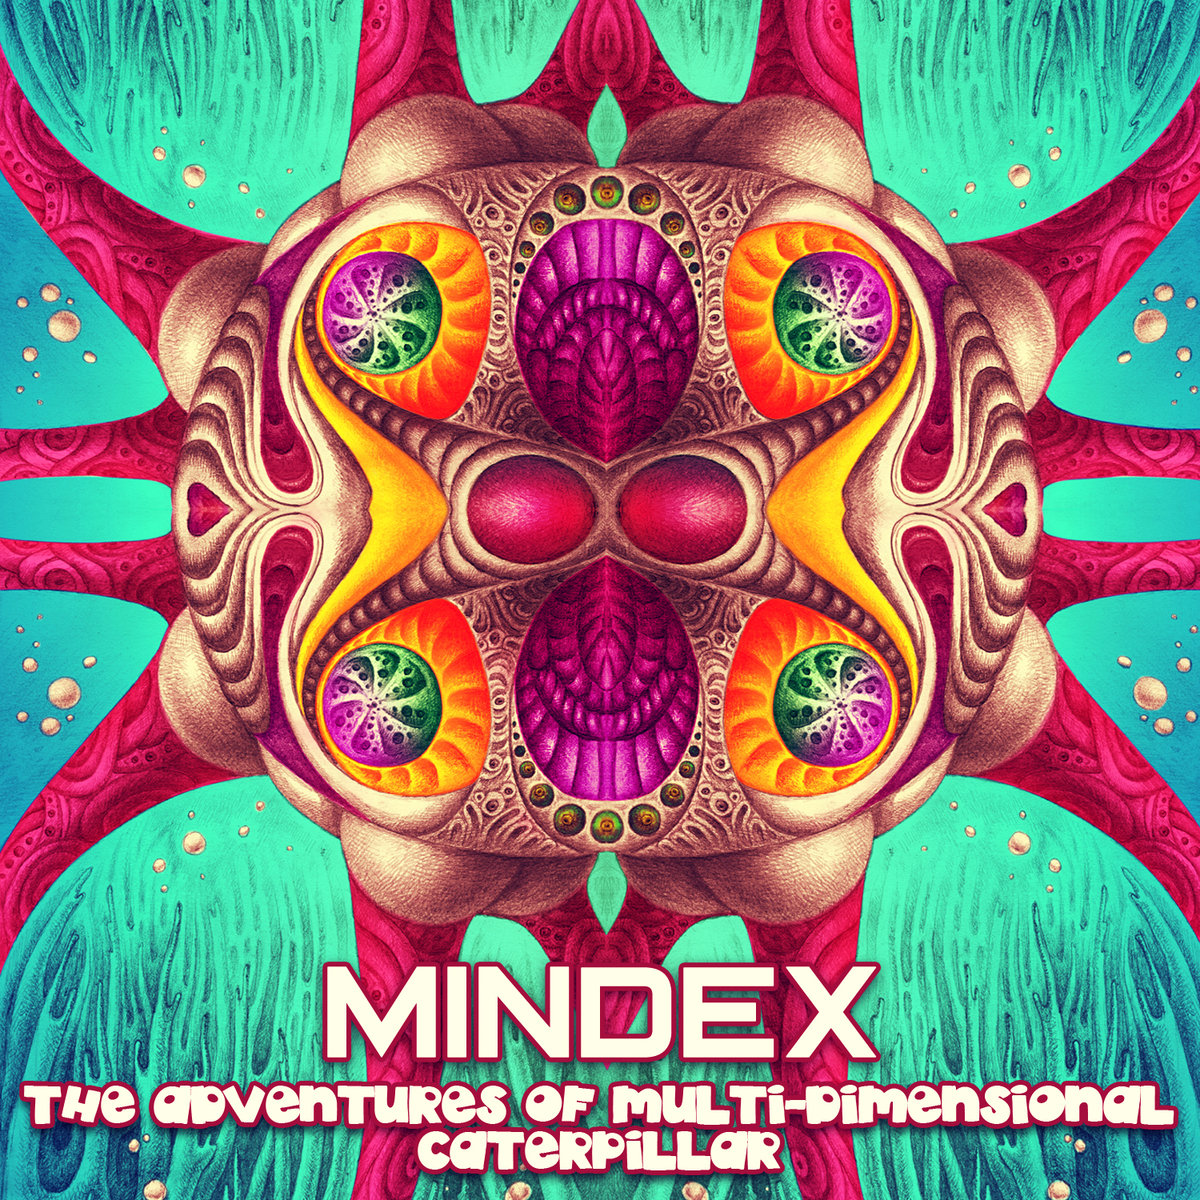 Mindex - Electroshock @ 'The Adventures of Multi-Dimensional Caterpillar' album (drum & bass, electronic)